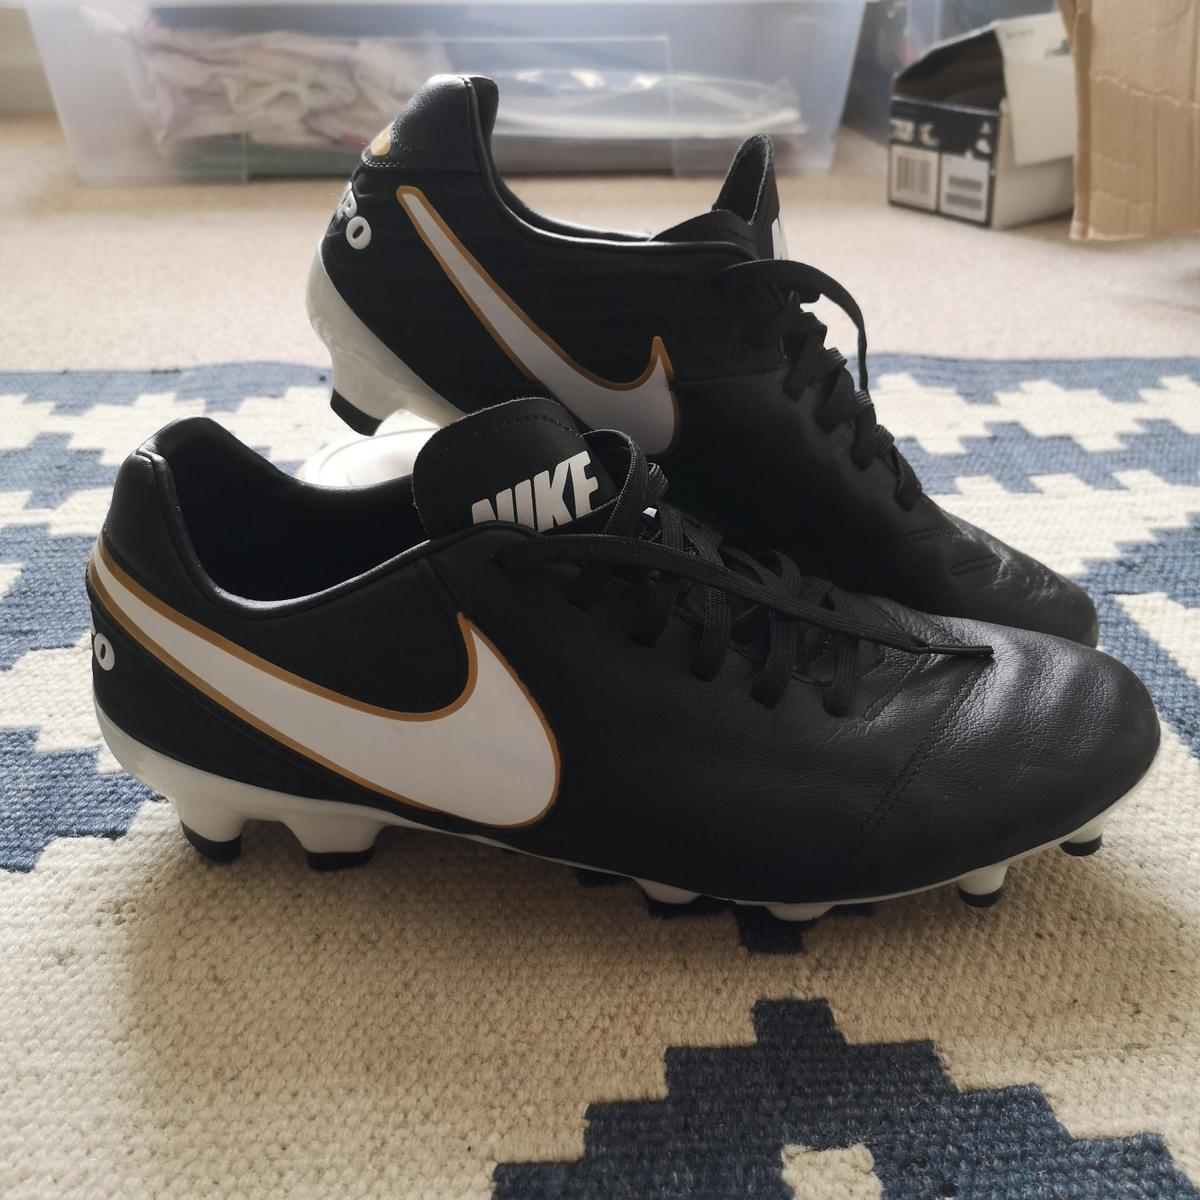 Glamour Escarpa entonces  Nike Tiempo Football Boots UK Mens 8 NEW in SE15 London for £20.00 for sale  | Shpock